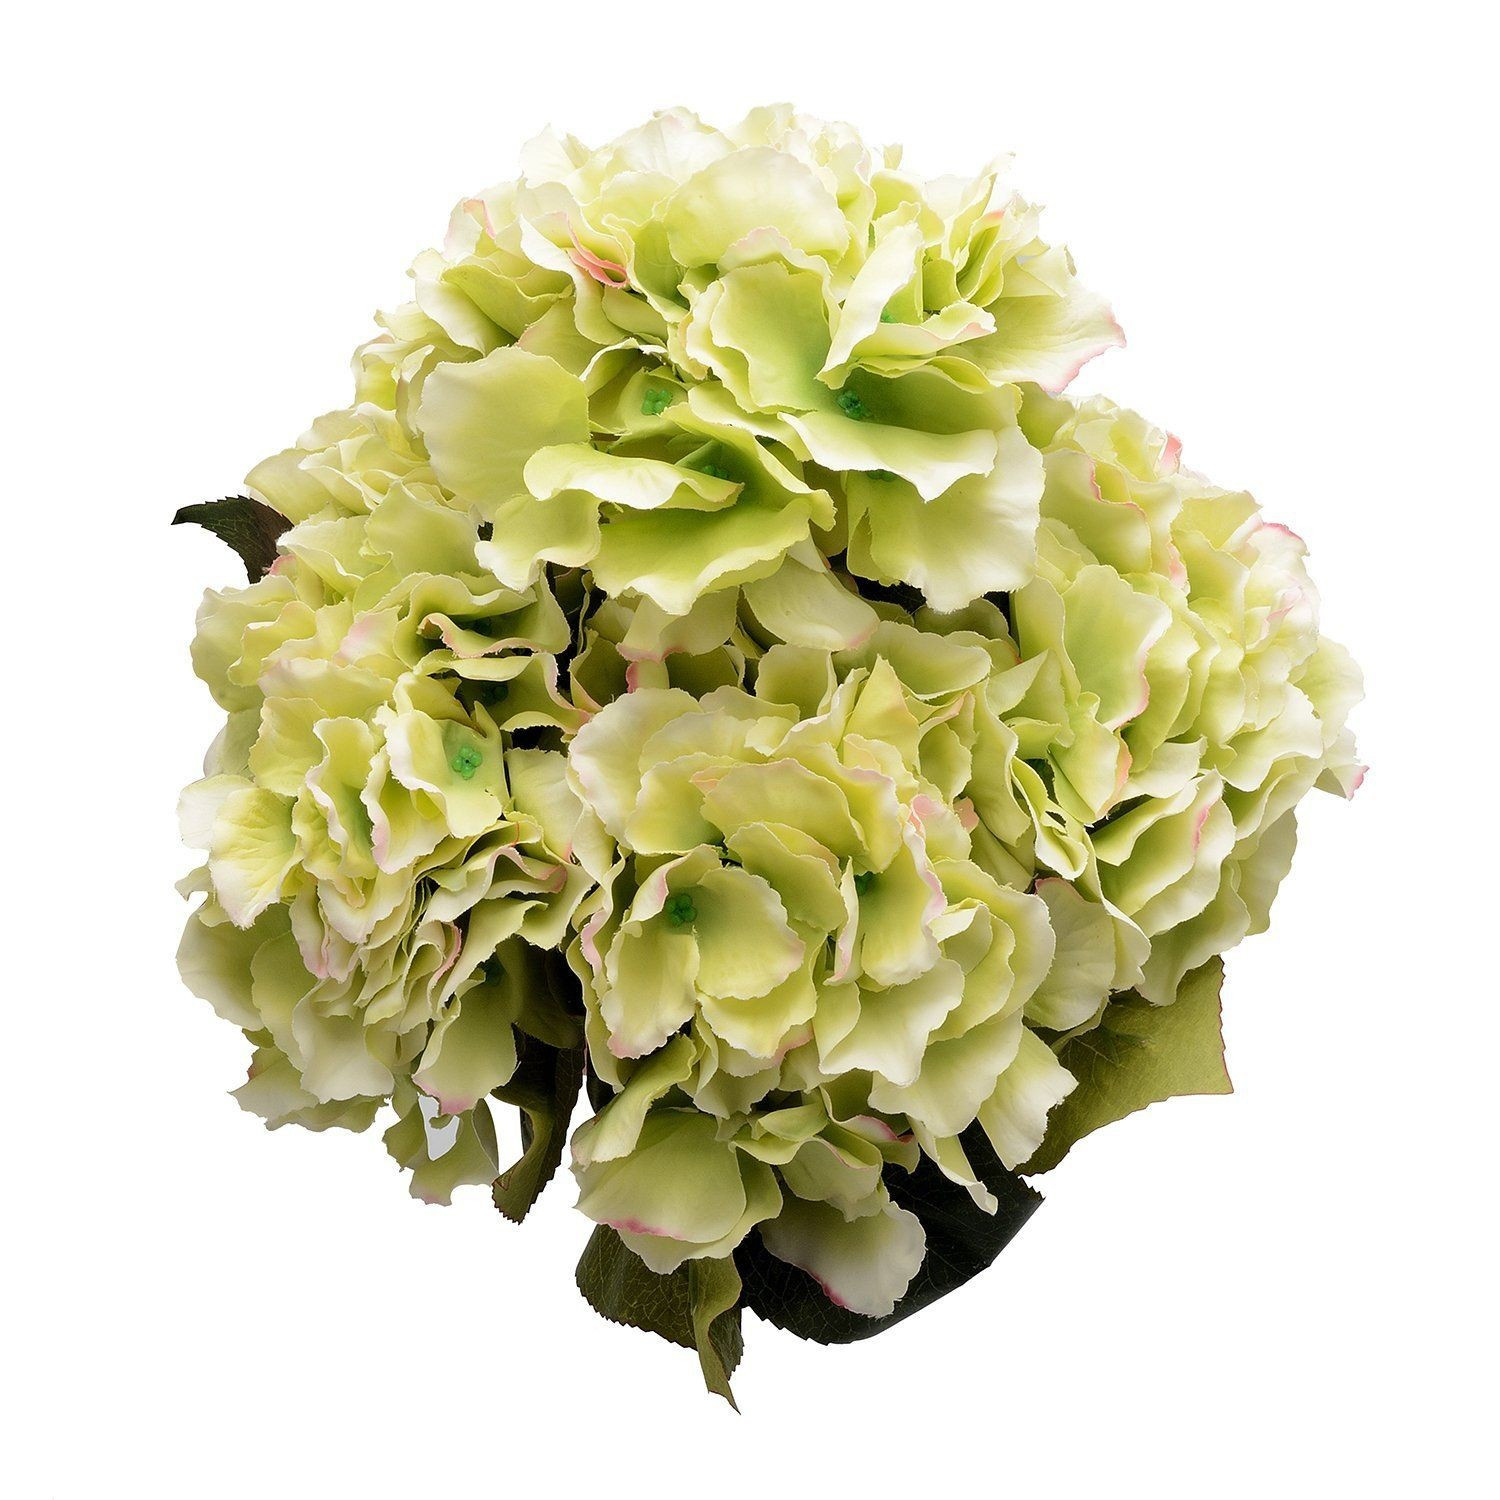 tall stem vase of hydrangea decorations wedding unique cool wedding ideas as for h pertaining to hydrangea decorations wedding luxury derker silk artificial hydrangea bouquet 5 big heads hydrangea of hydrangea decorations